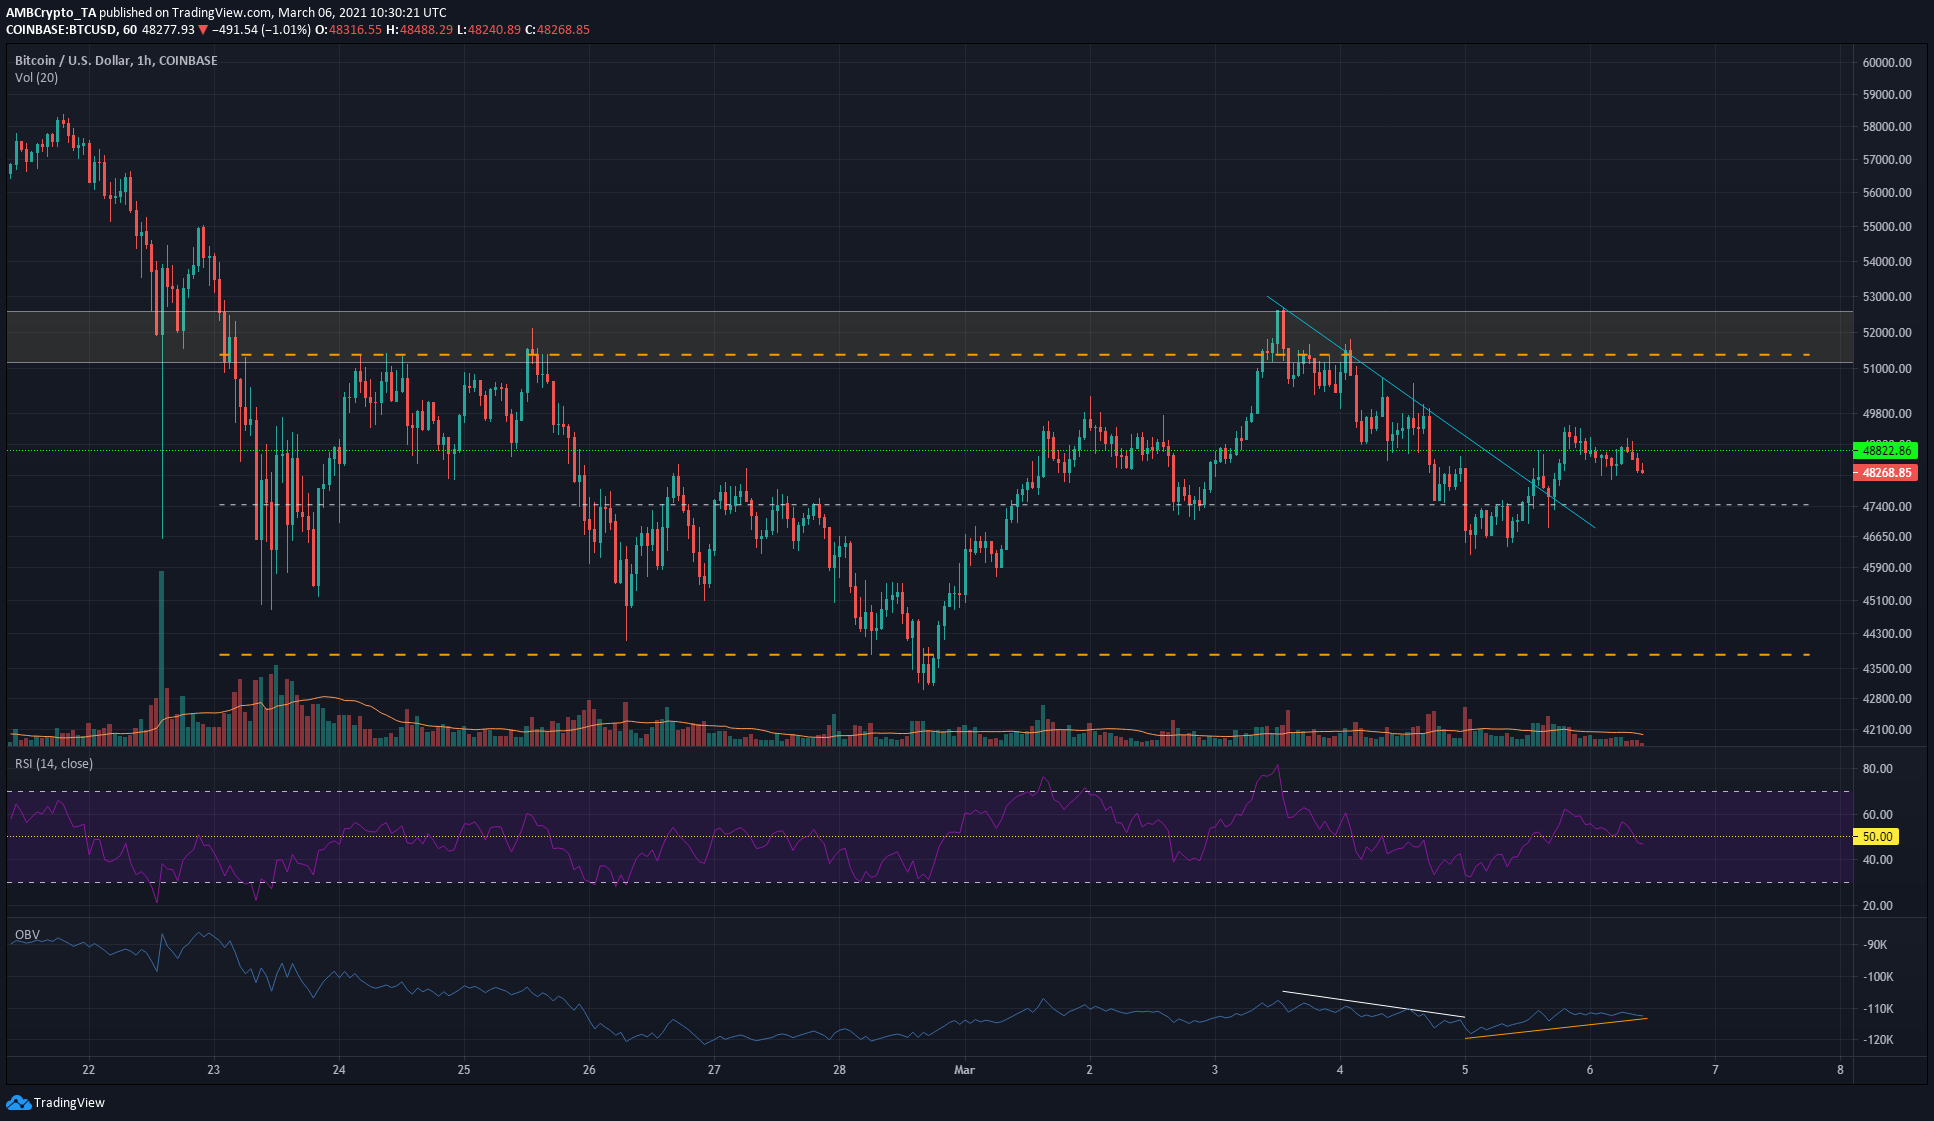 Bitcoin Price Analysis: 06 March